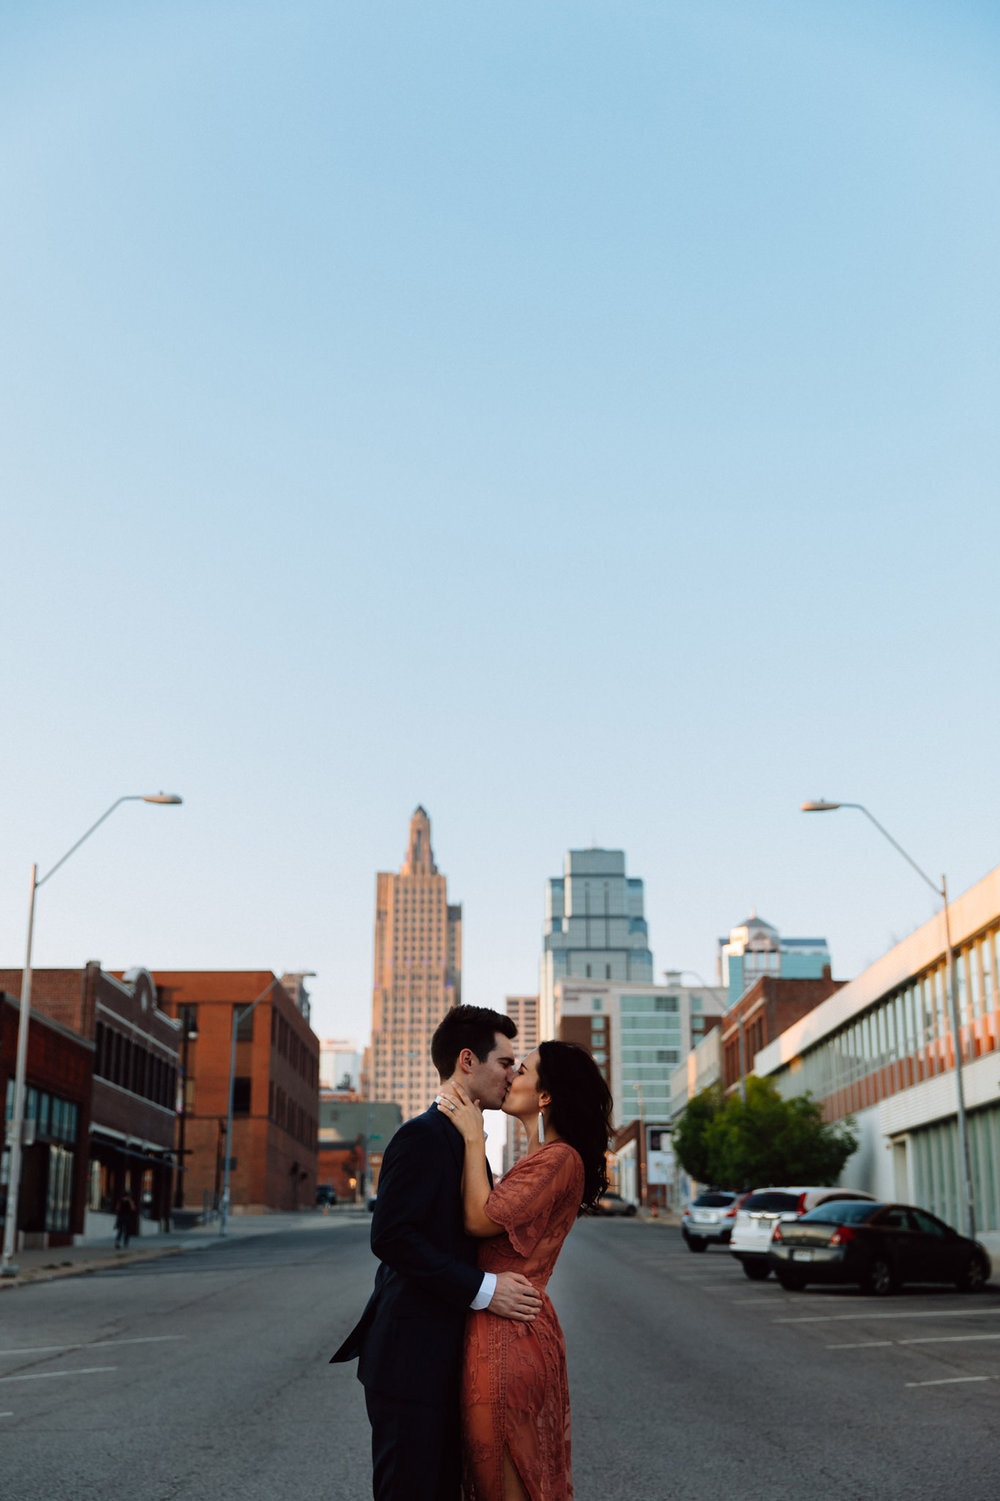 164_Crossroads Engagement Session Kansas City_Kindling Wedding Photography.JPG